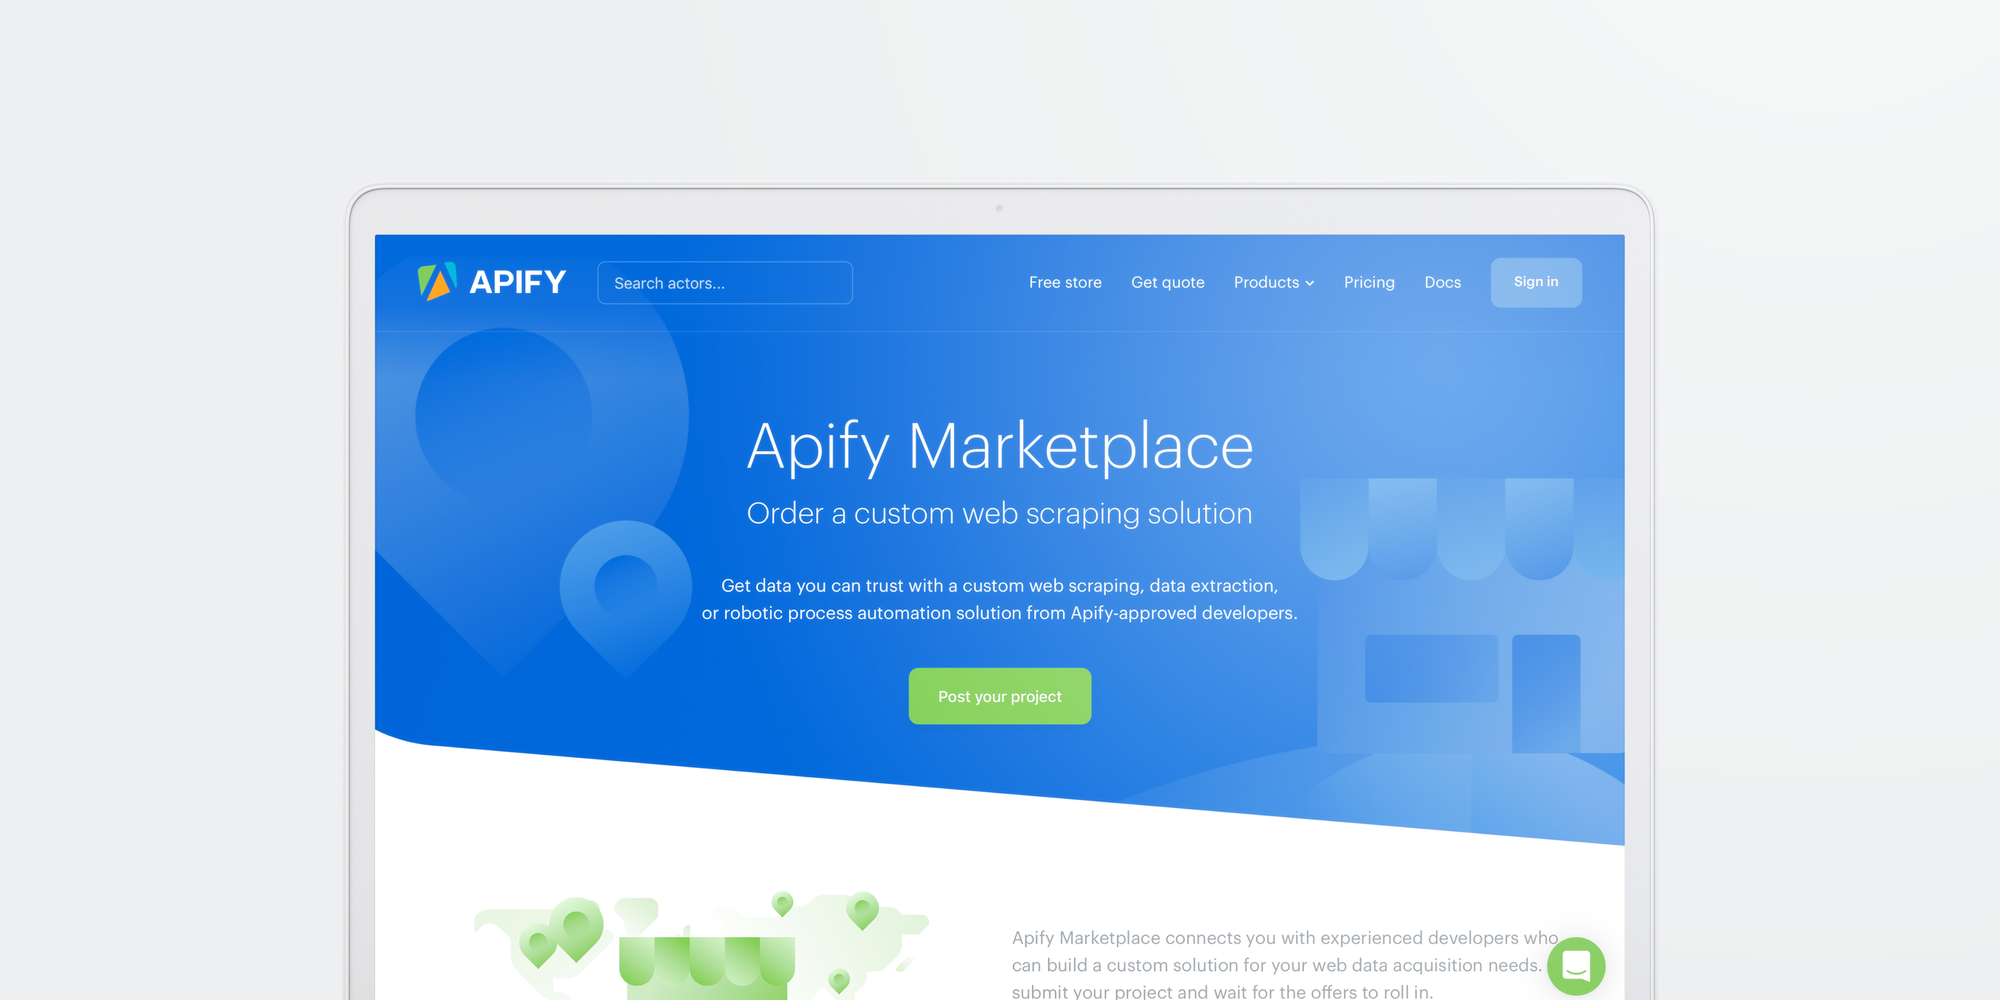 Get custom web scraping solutions from certified developers on Apify Marketplace